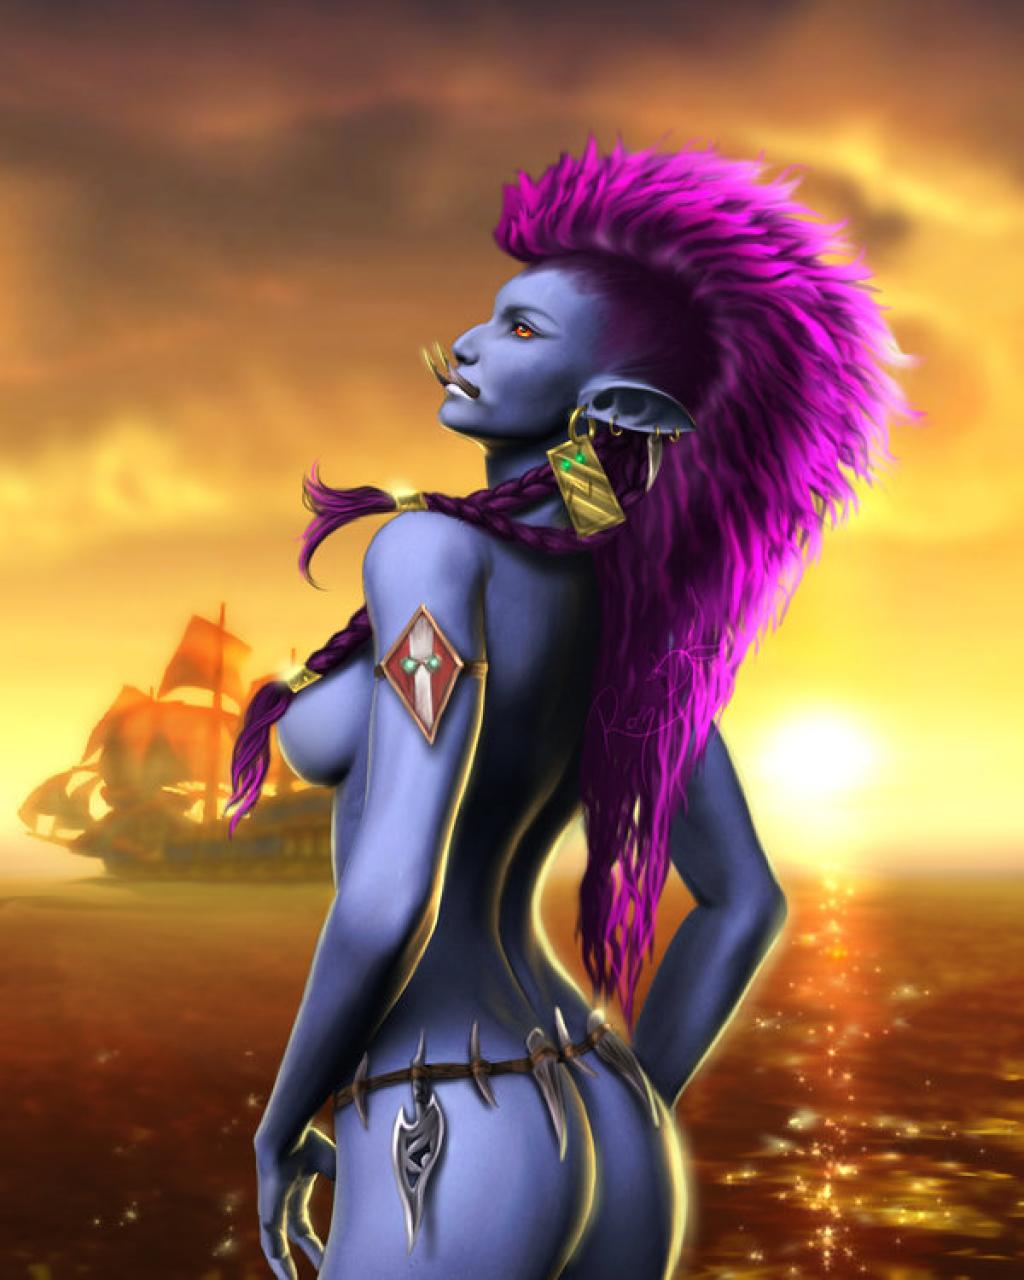 World of warcraft troll smut naked reality pussy